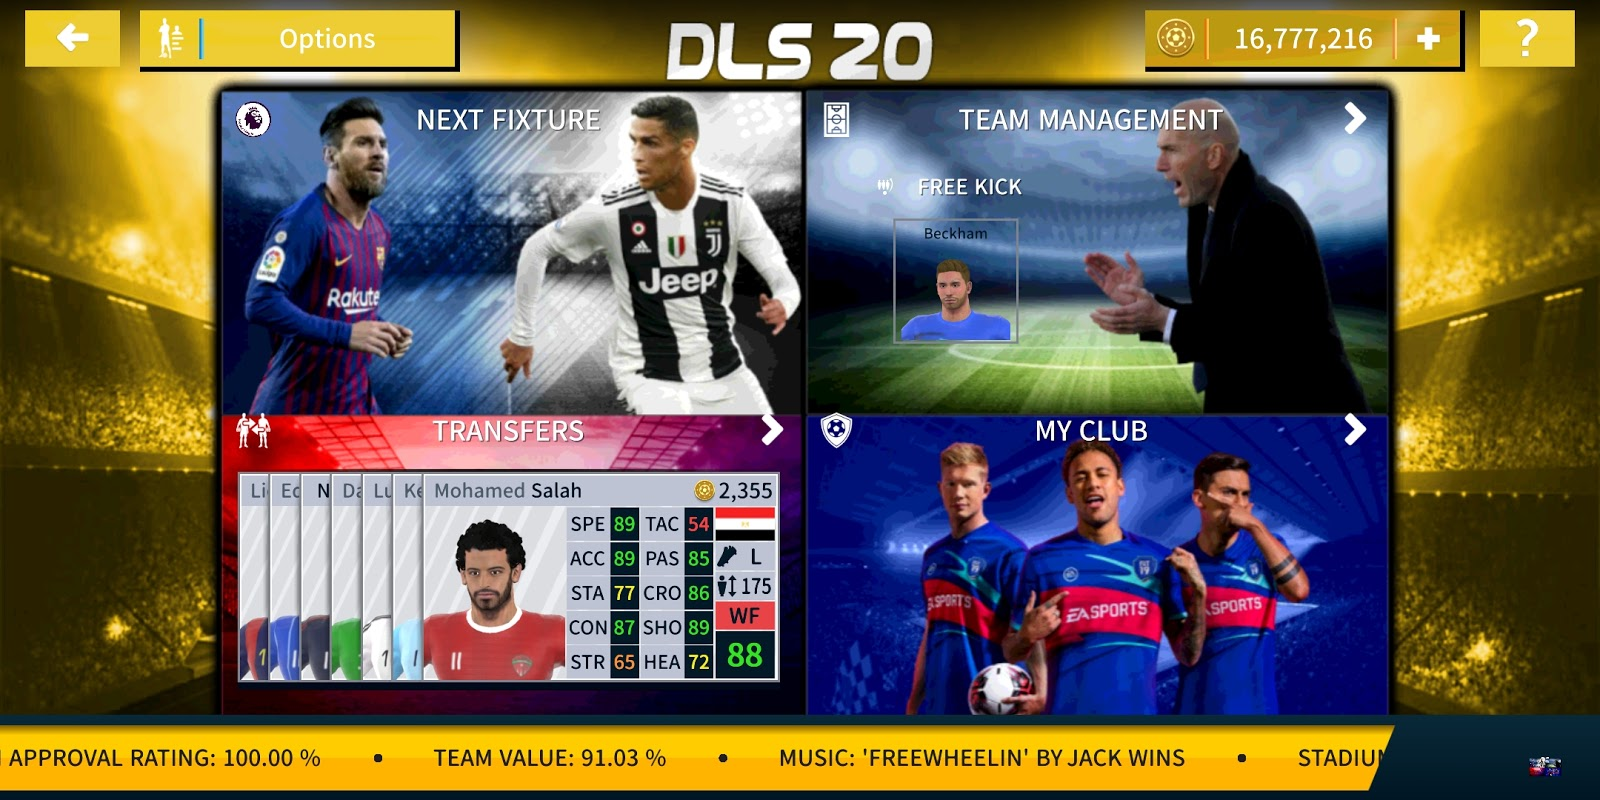 Best Soccer Players 2020.Dream League Soccer 2020 Best Graphic Android Heavy